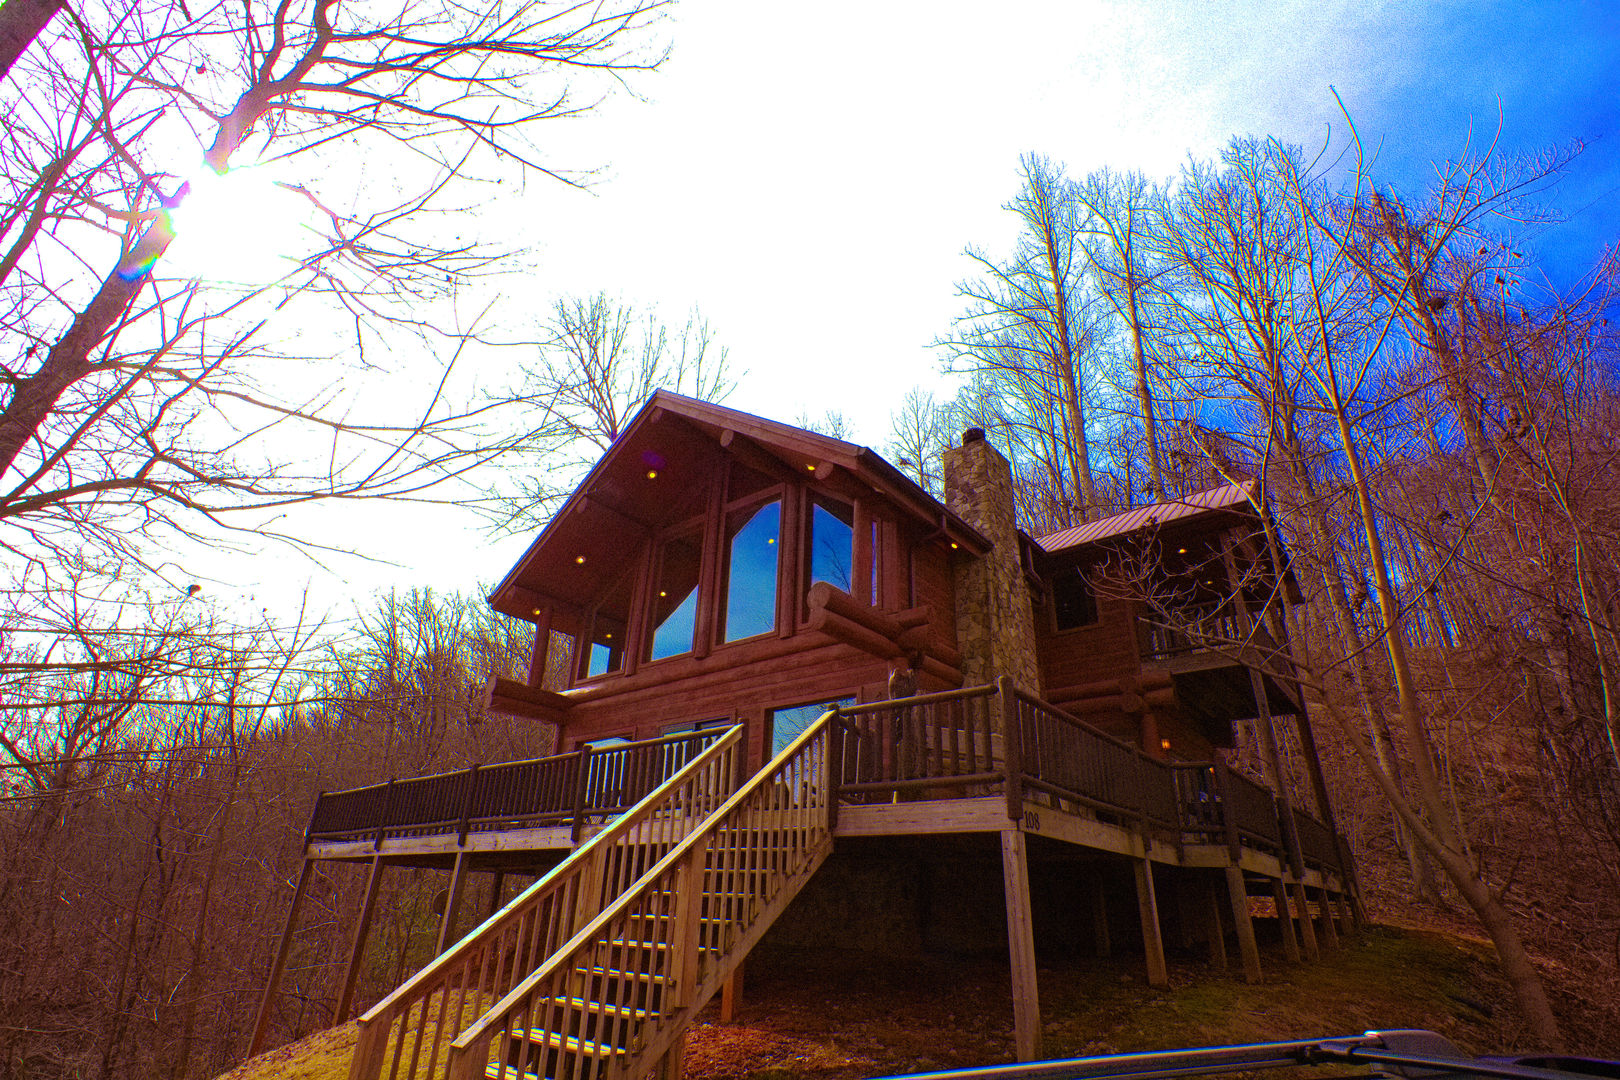 Cabin in the Clouds - Bryson City, NC